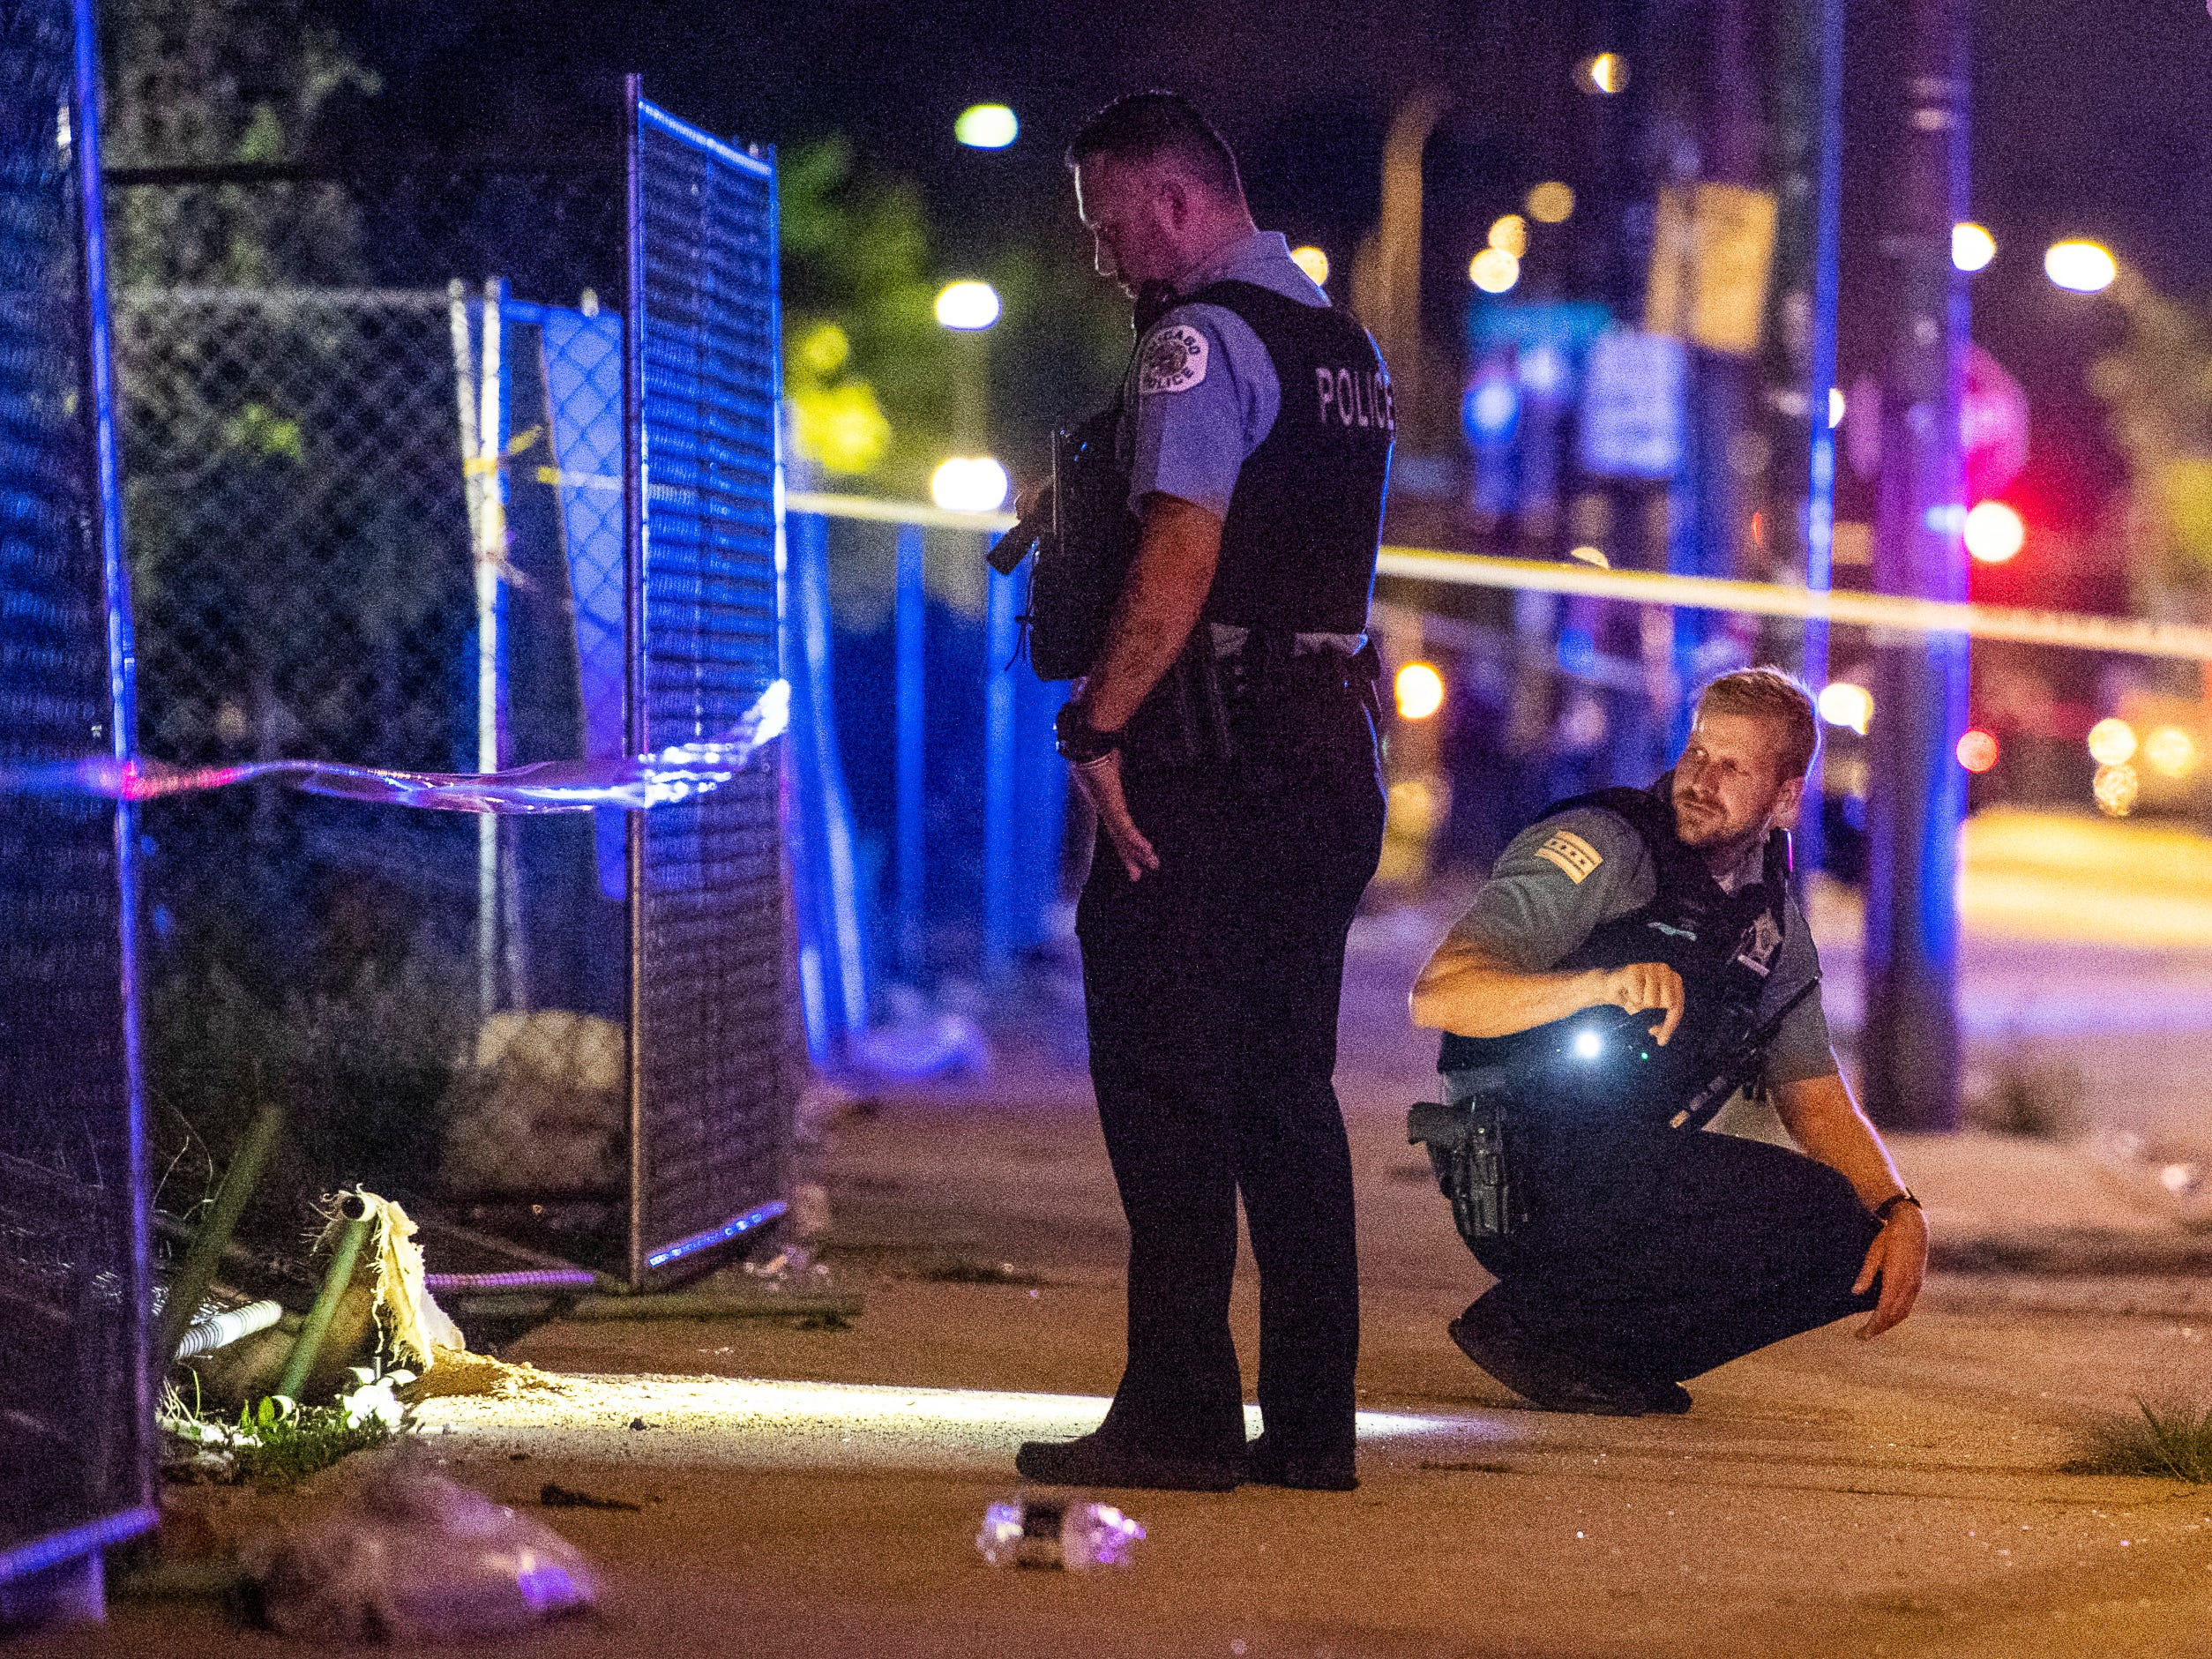 In this Aug. 5, 2018 photo, police investigate the scene where multiple people were shot in Chicago. Police Superintendent Eddie Johnson plans to discuss the violence during a Monday news conference.